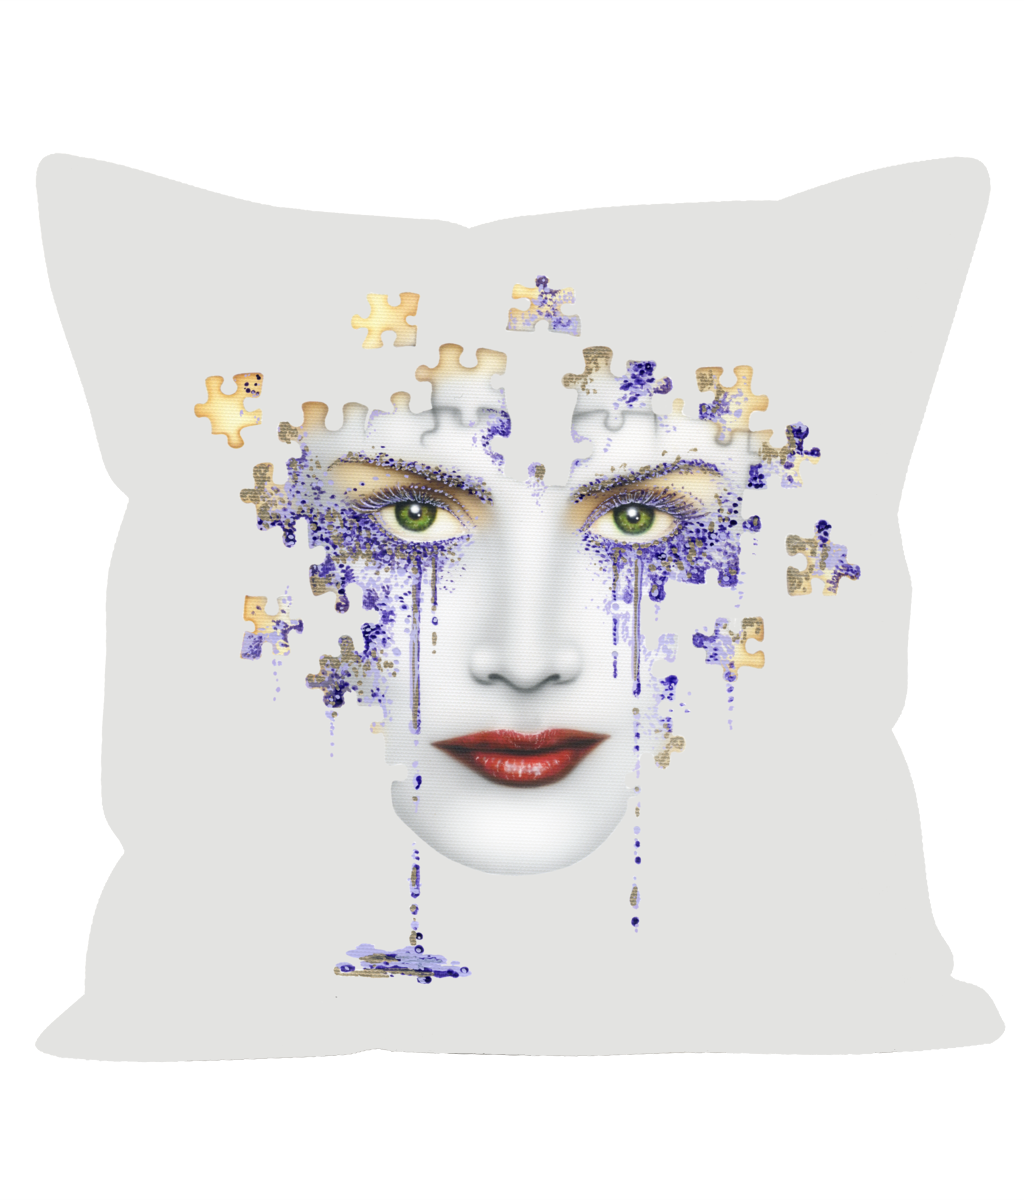 Puzzled Lilac Tears - Sofa Cushion